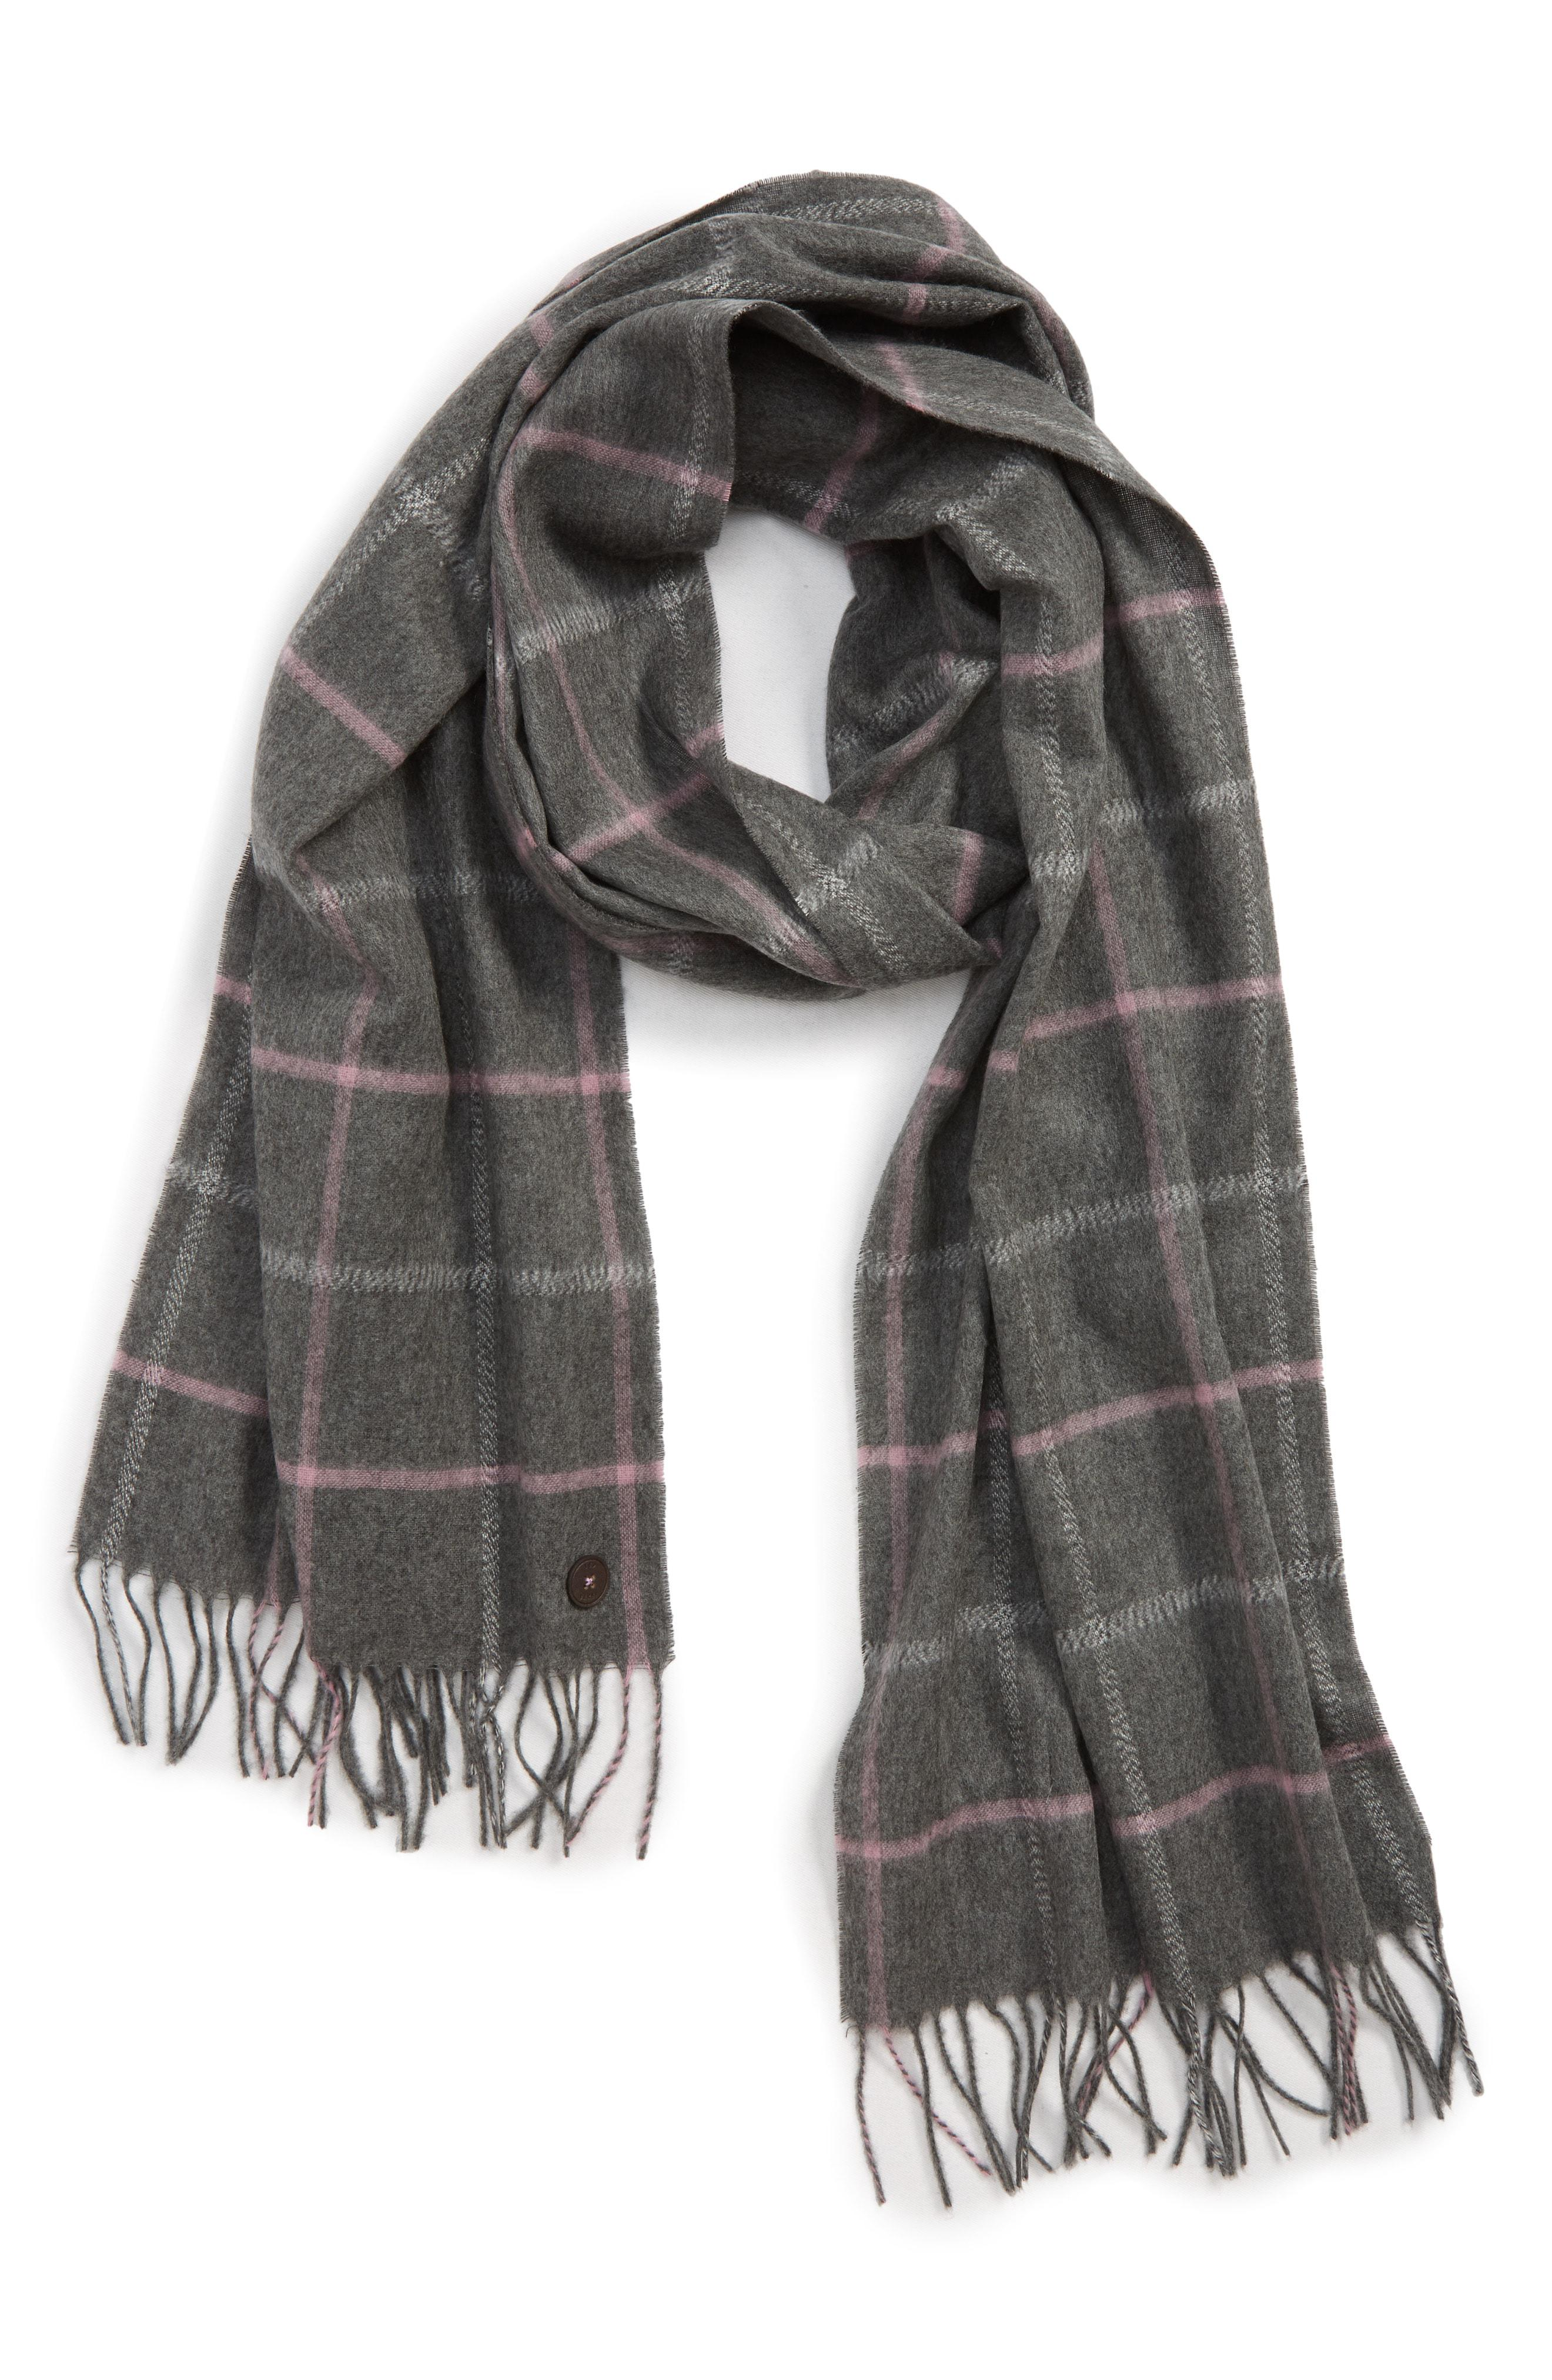 623c543e29f2 Lyst - Ted Baker Window Check Fringed Scarf in Gray for Men